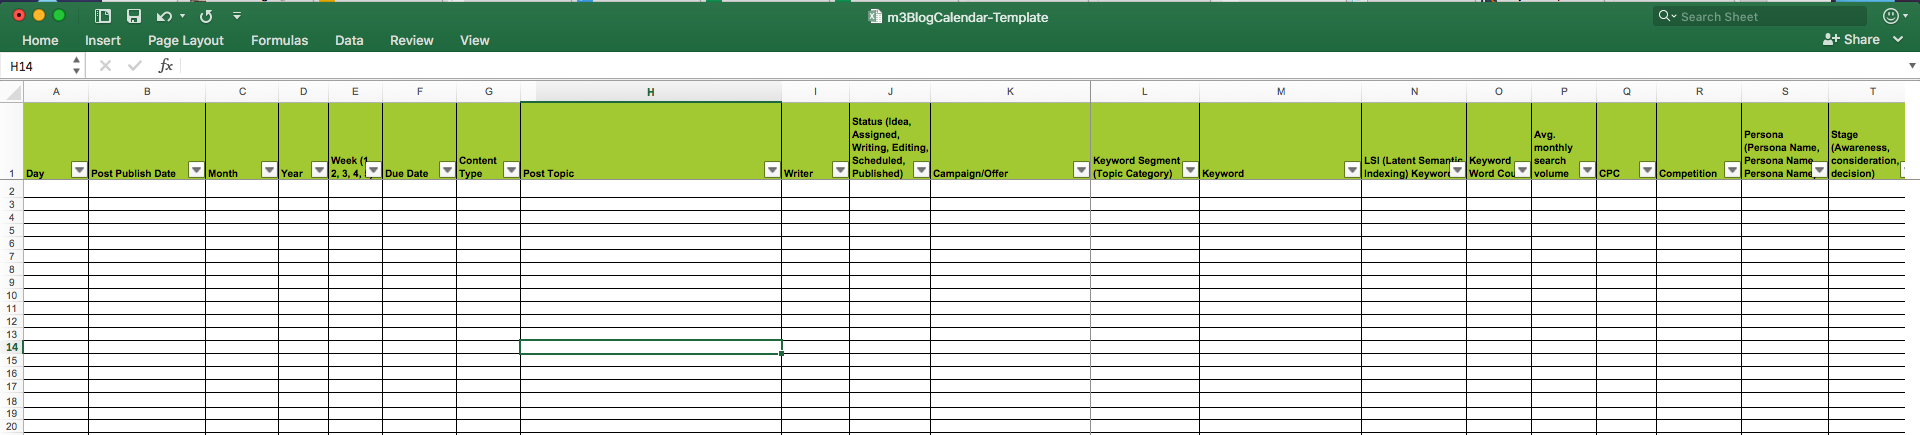 excel-xlsx-2019-meeting-calendar-templates-pdf-doc-ppt-excel-download